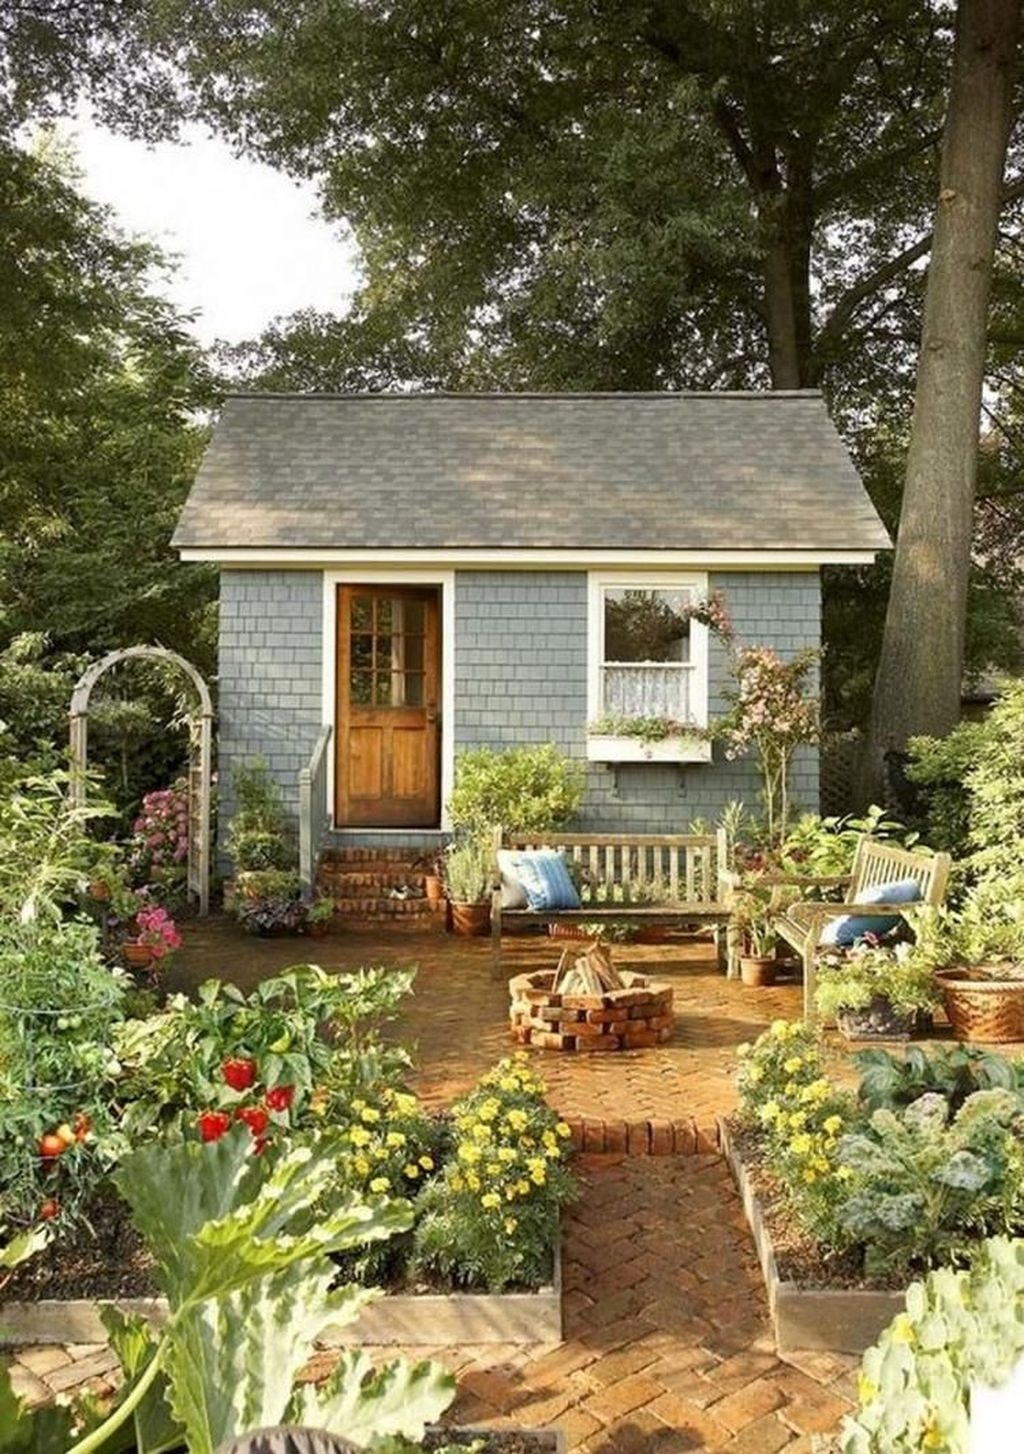 Awesome Cottage Garden Design Ideas For Your Dream House27